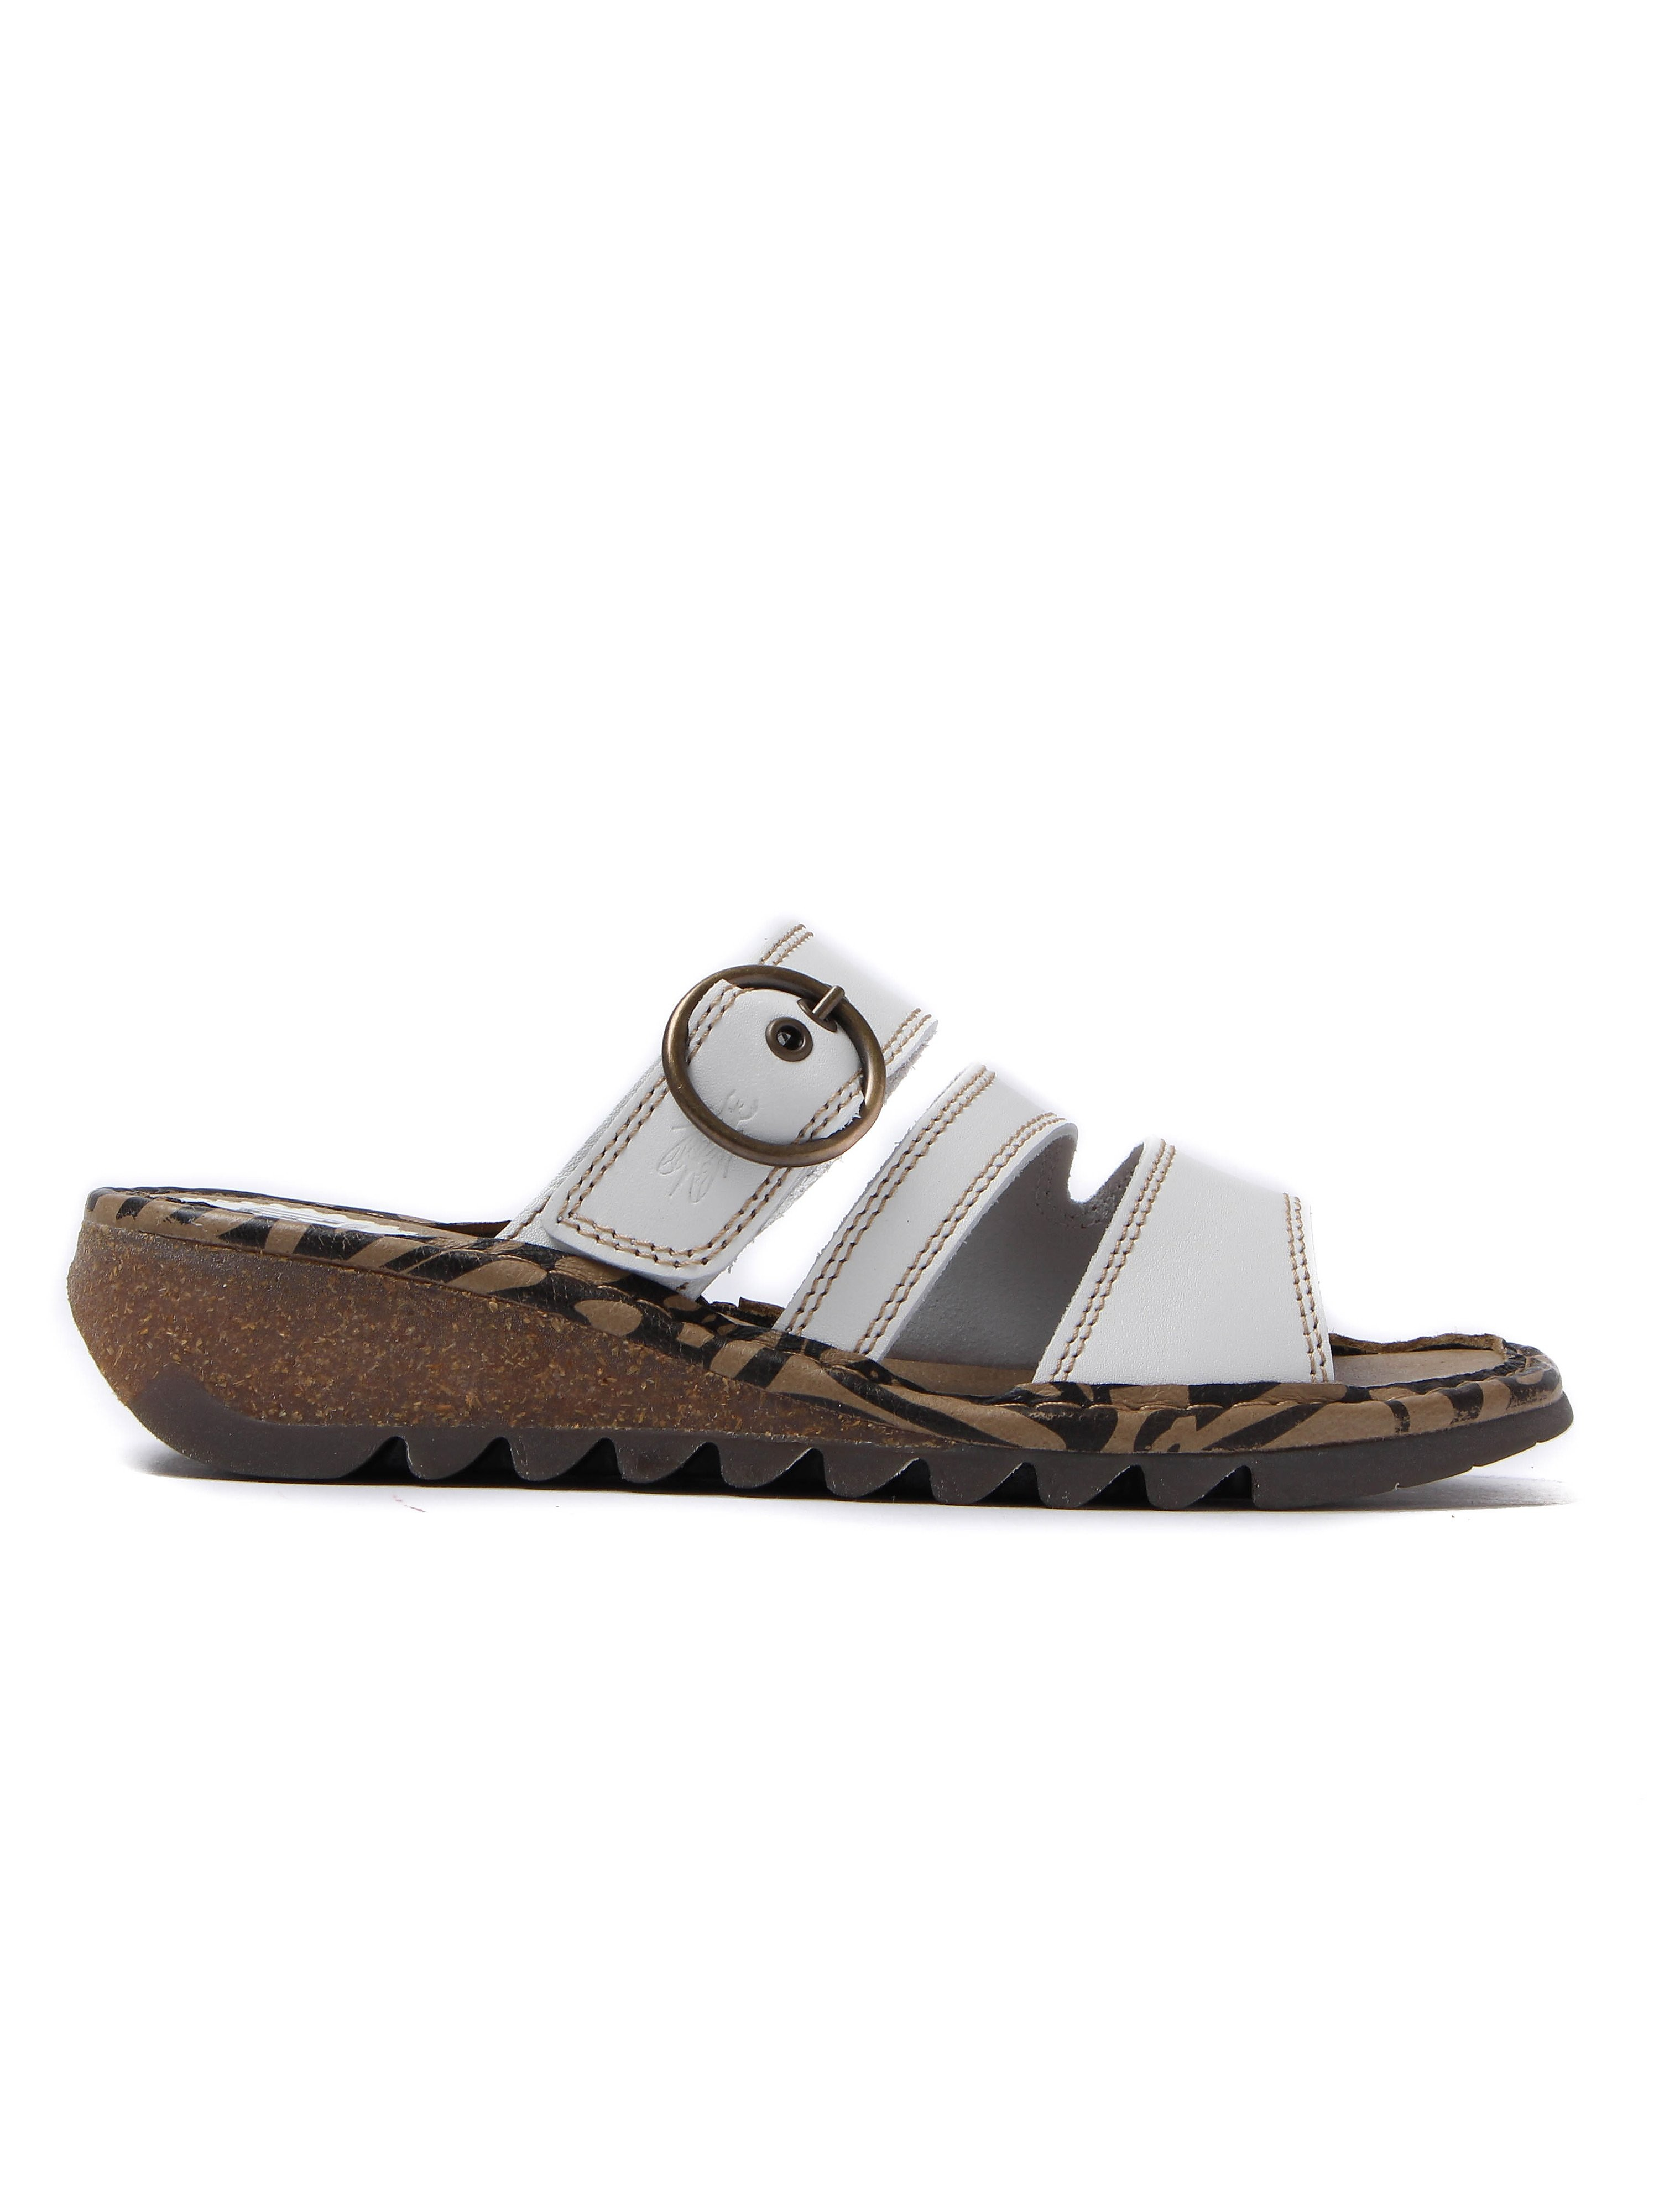 Fly London Women's Thea Bridle Leather Sandals - Off White